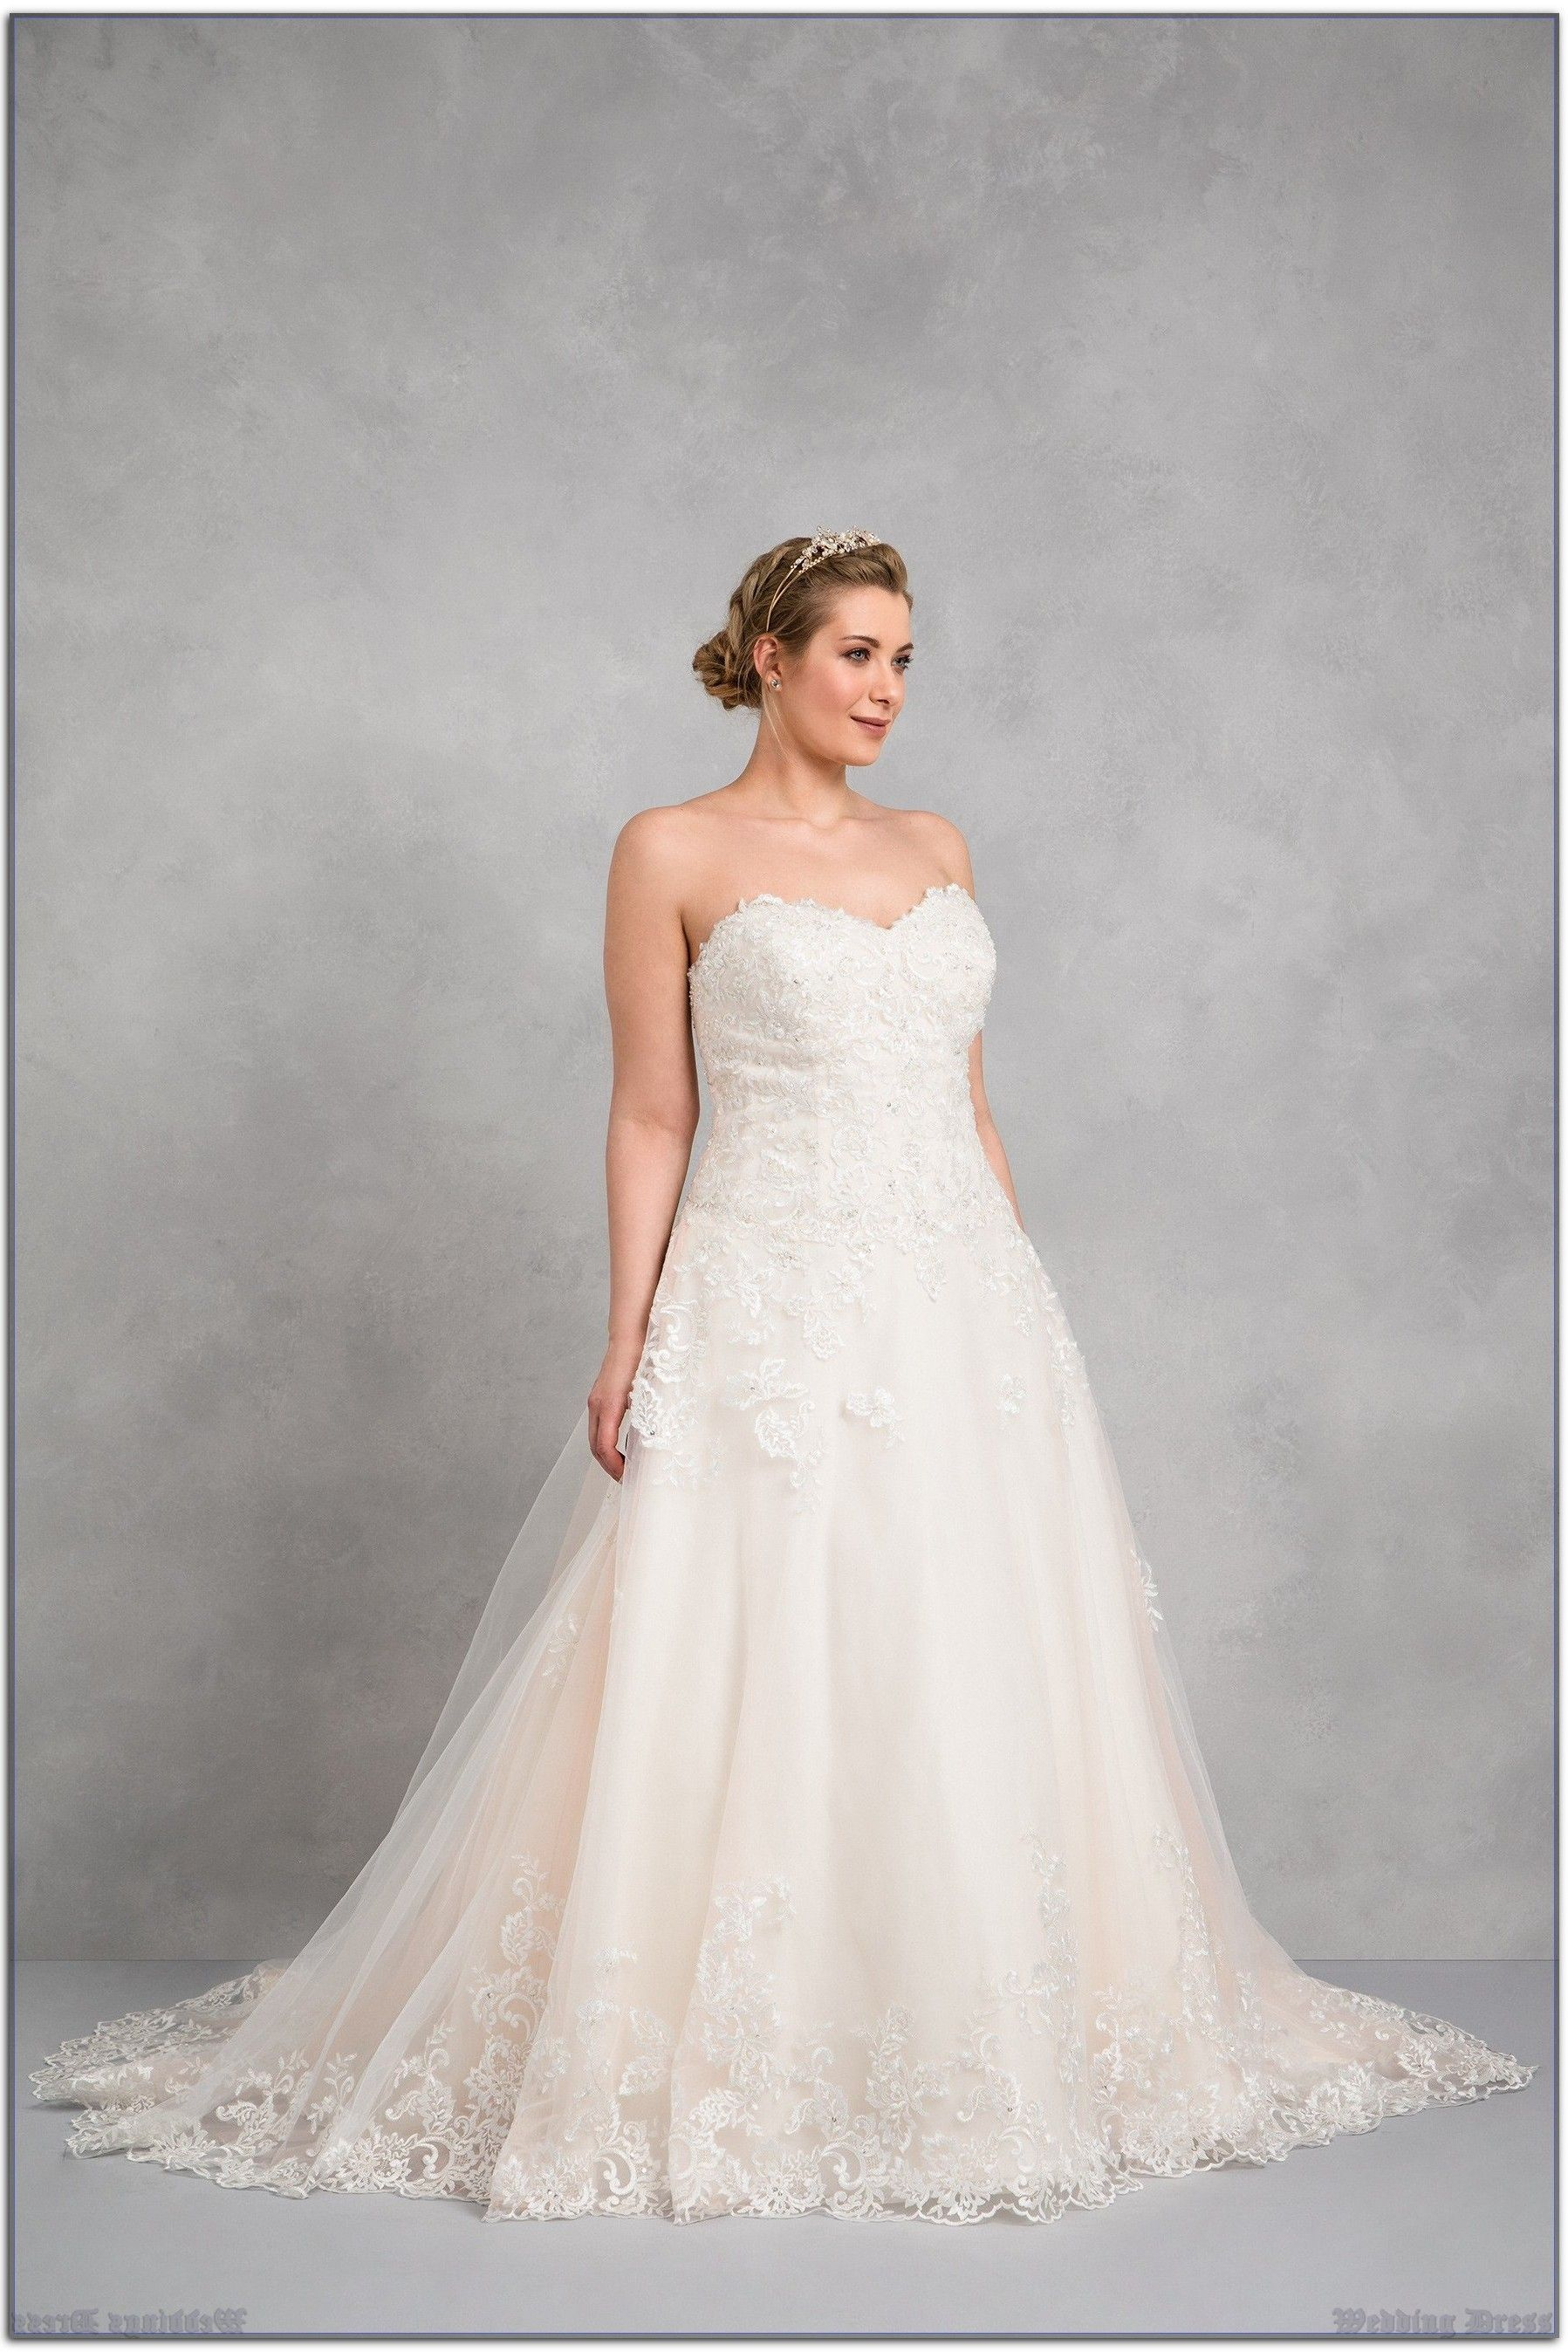 The Anthony Robins Guide To Weddings Dress